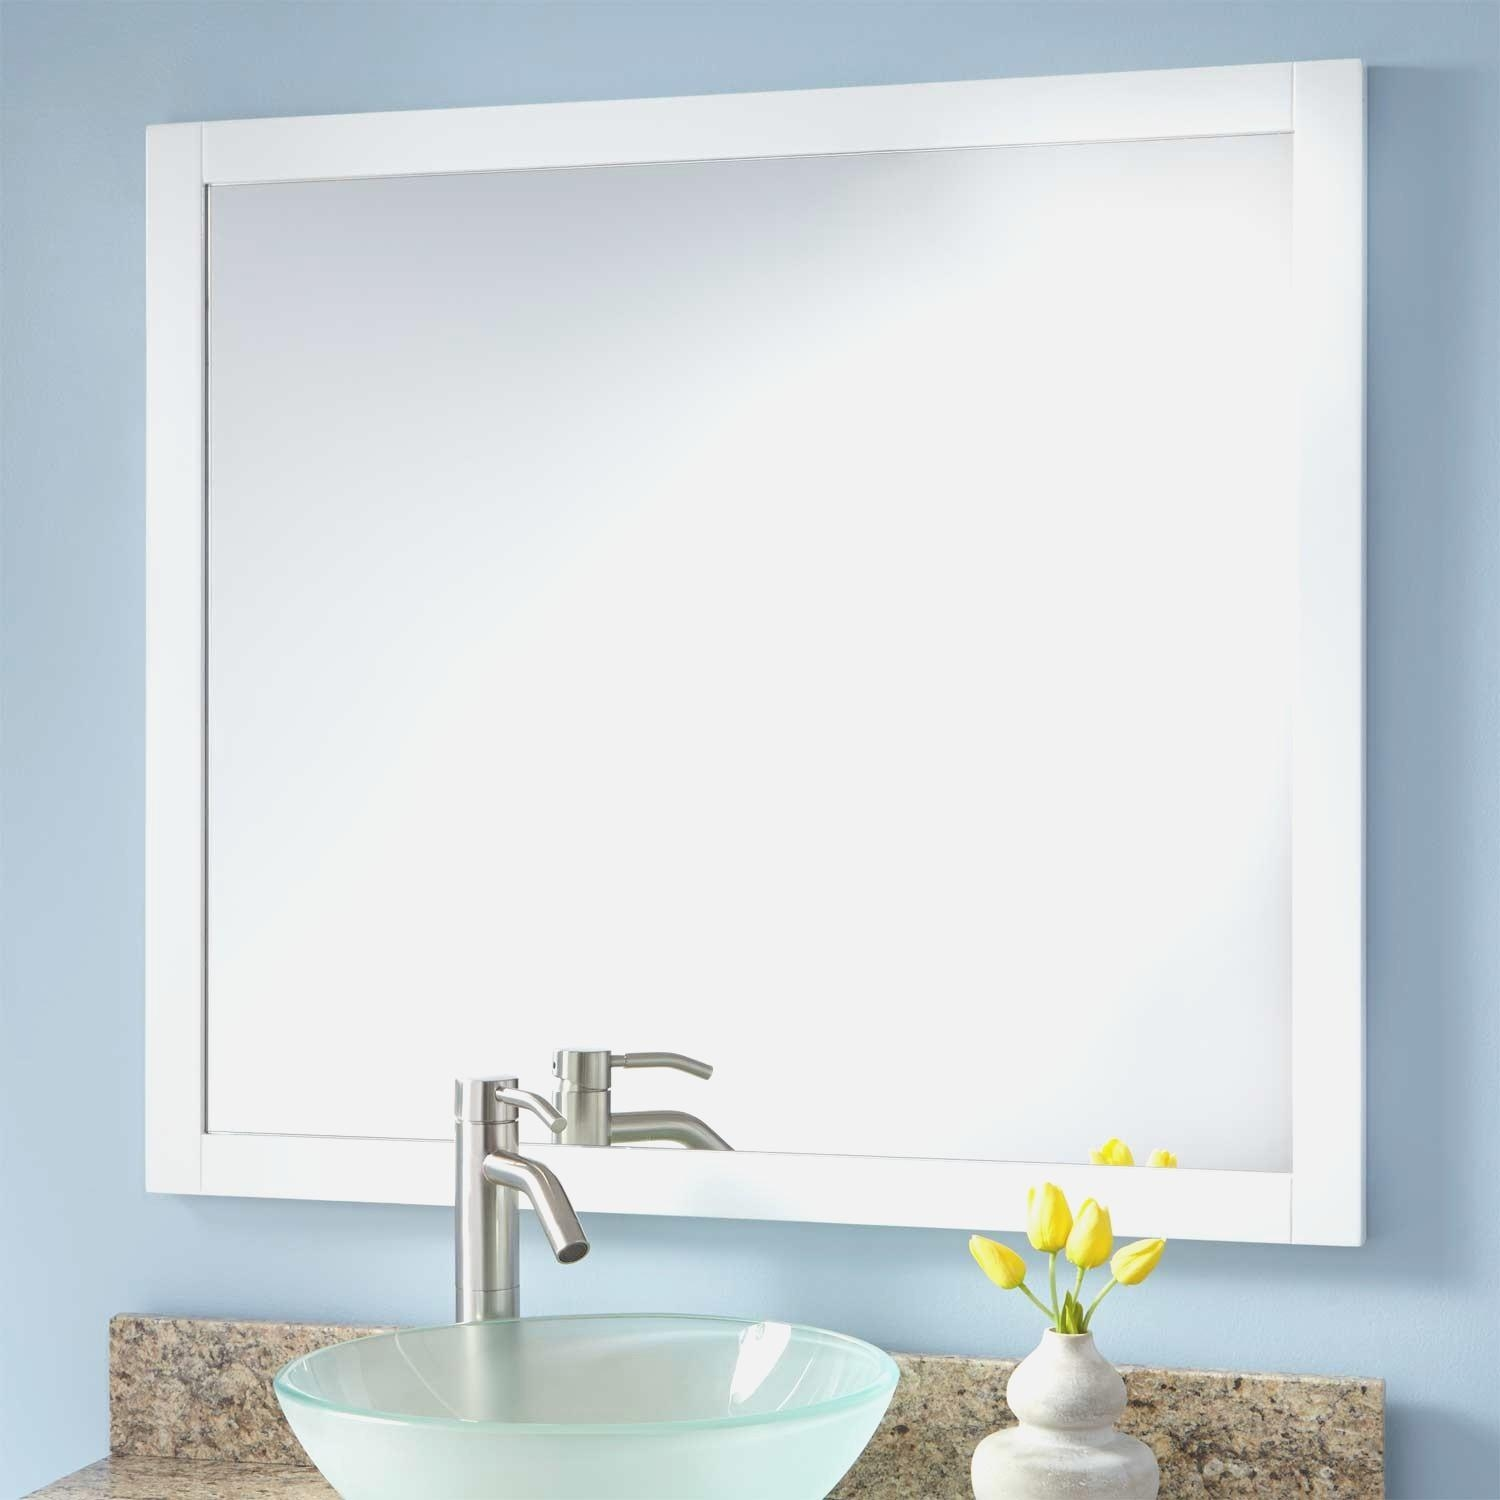 Bathroom : Best Framed Mirrors Bathroom Designs And Colors Modern Pertaining To Modern Framed Mirrors (Image 1 of 20)